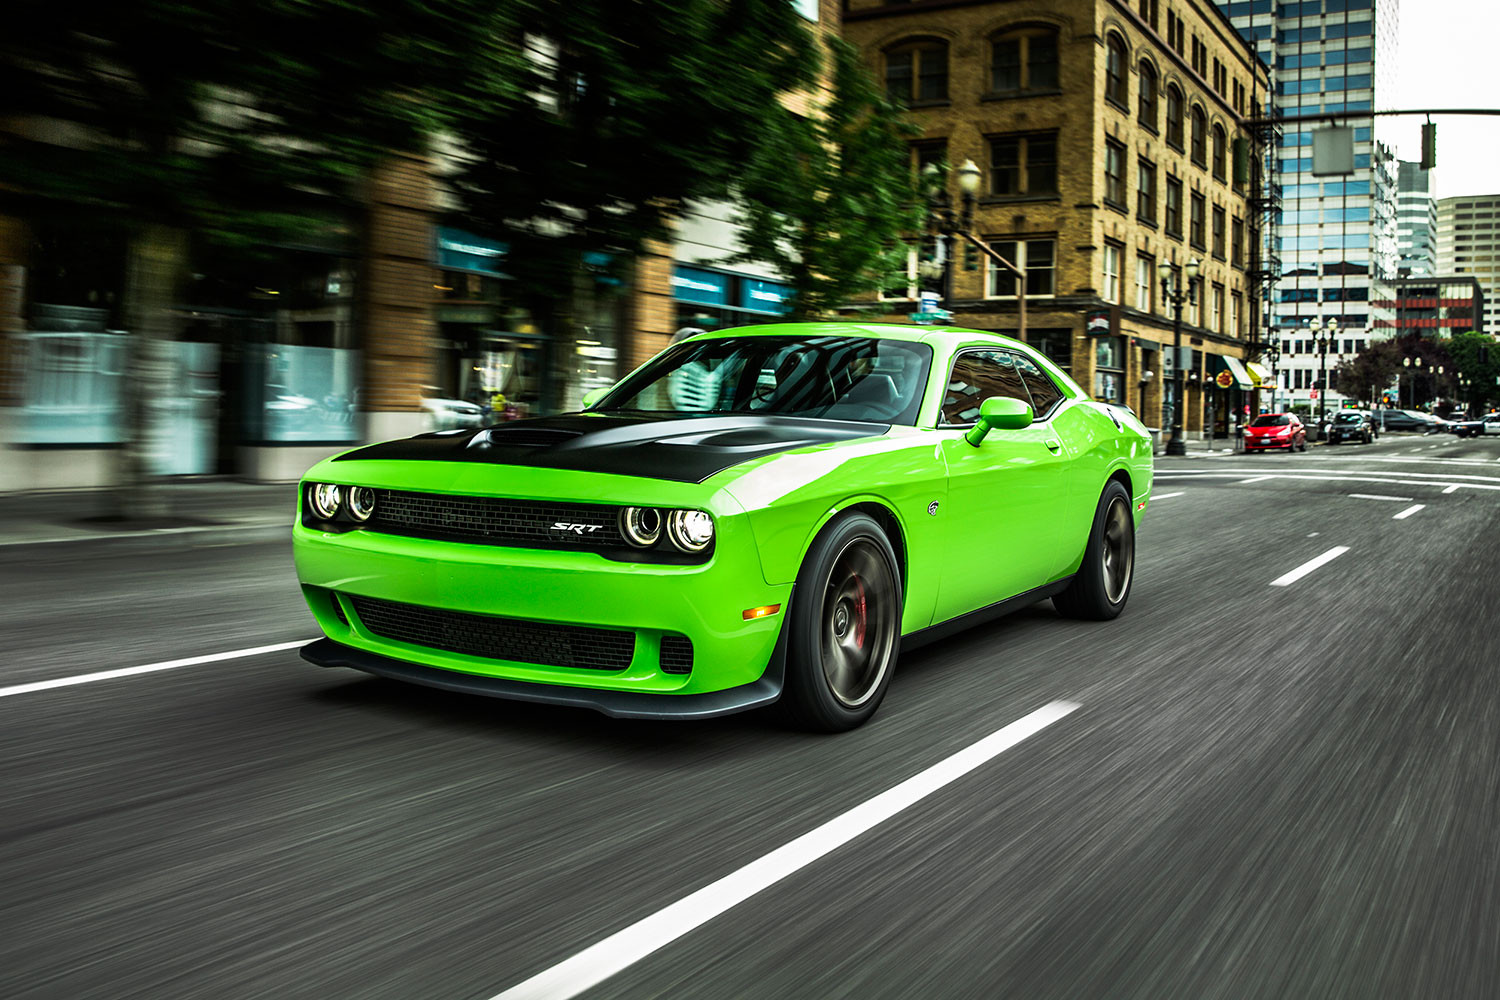 Dodge Challenger Hellcat in 'Go Green' on a suburban street.